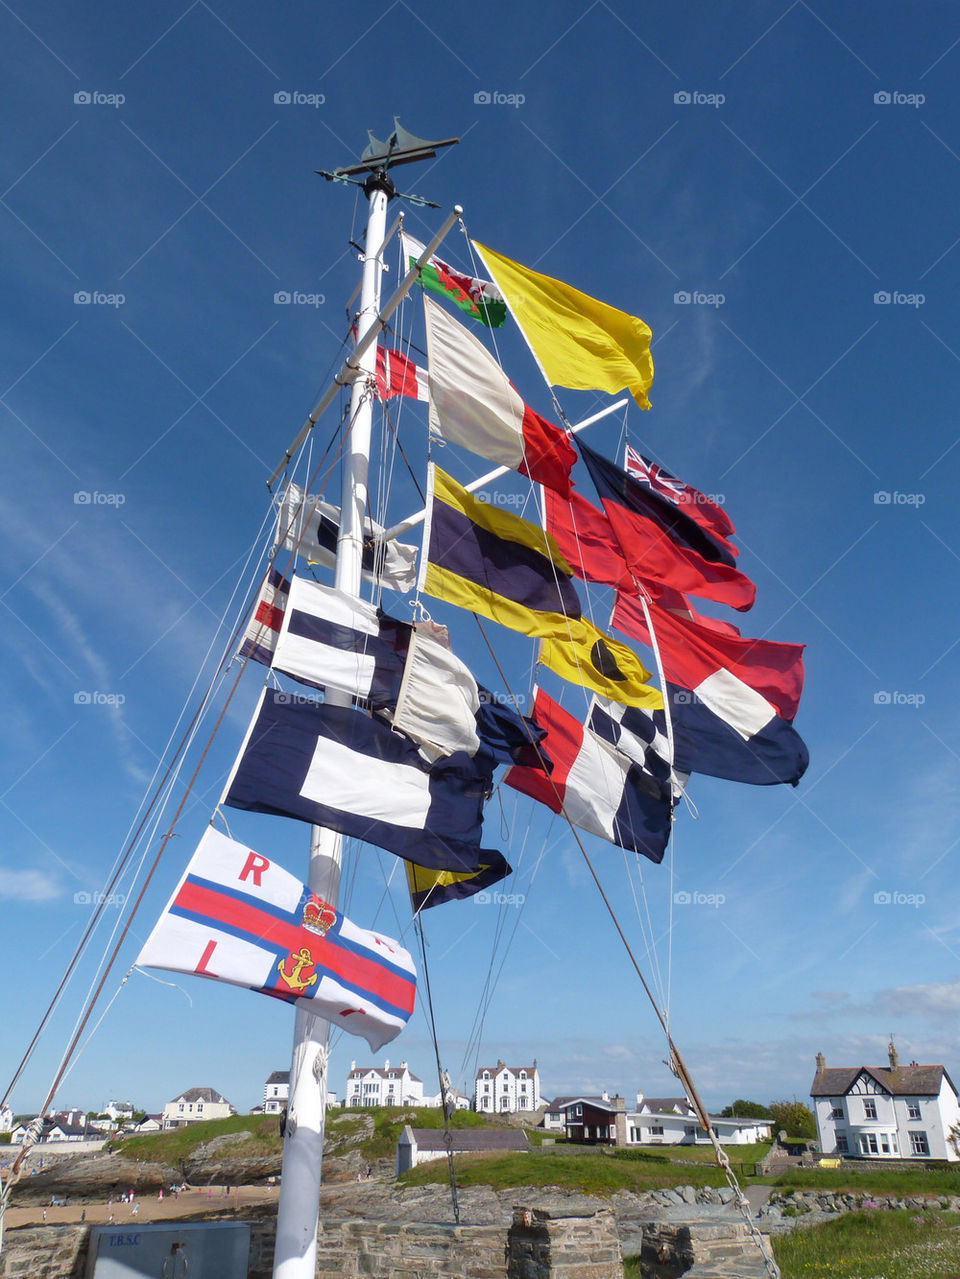 sky weather flags pole by samspeed87